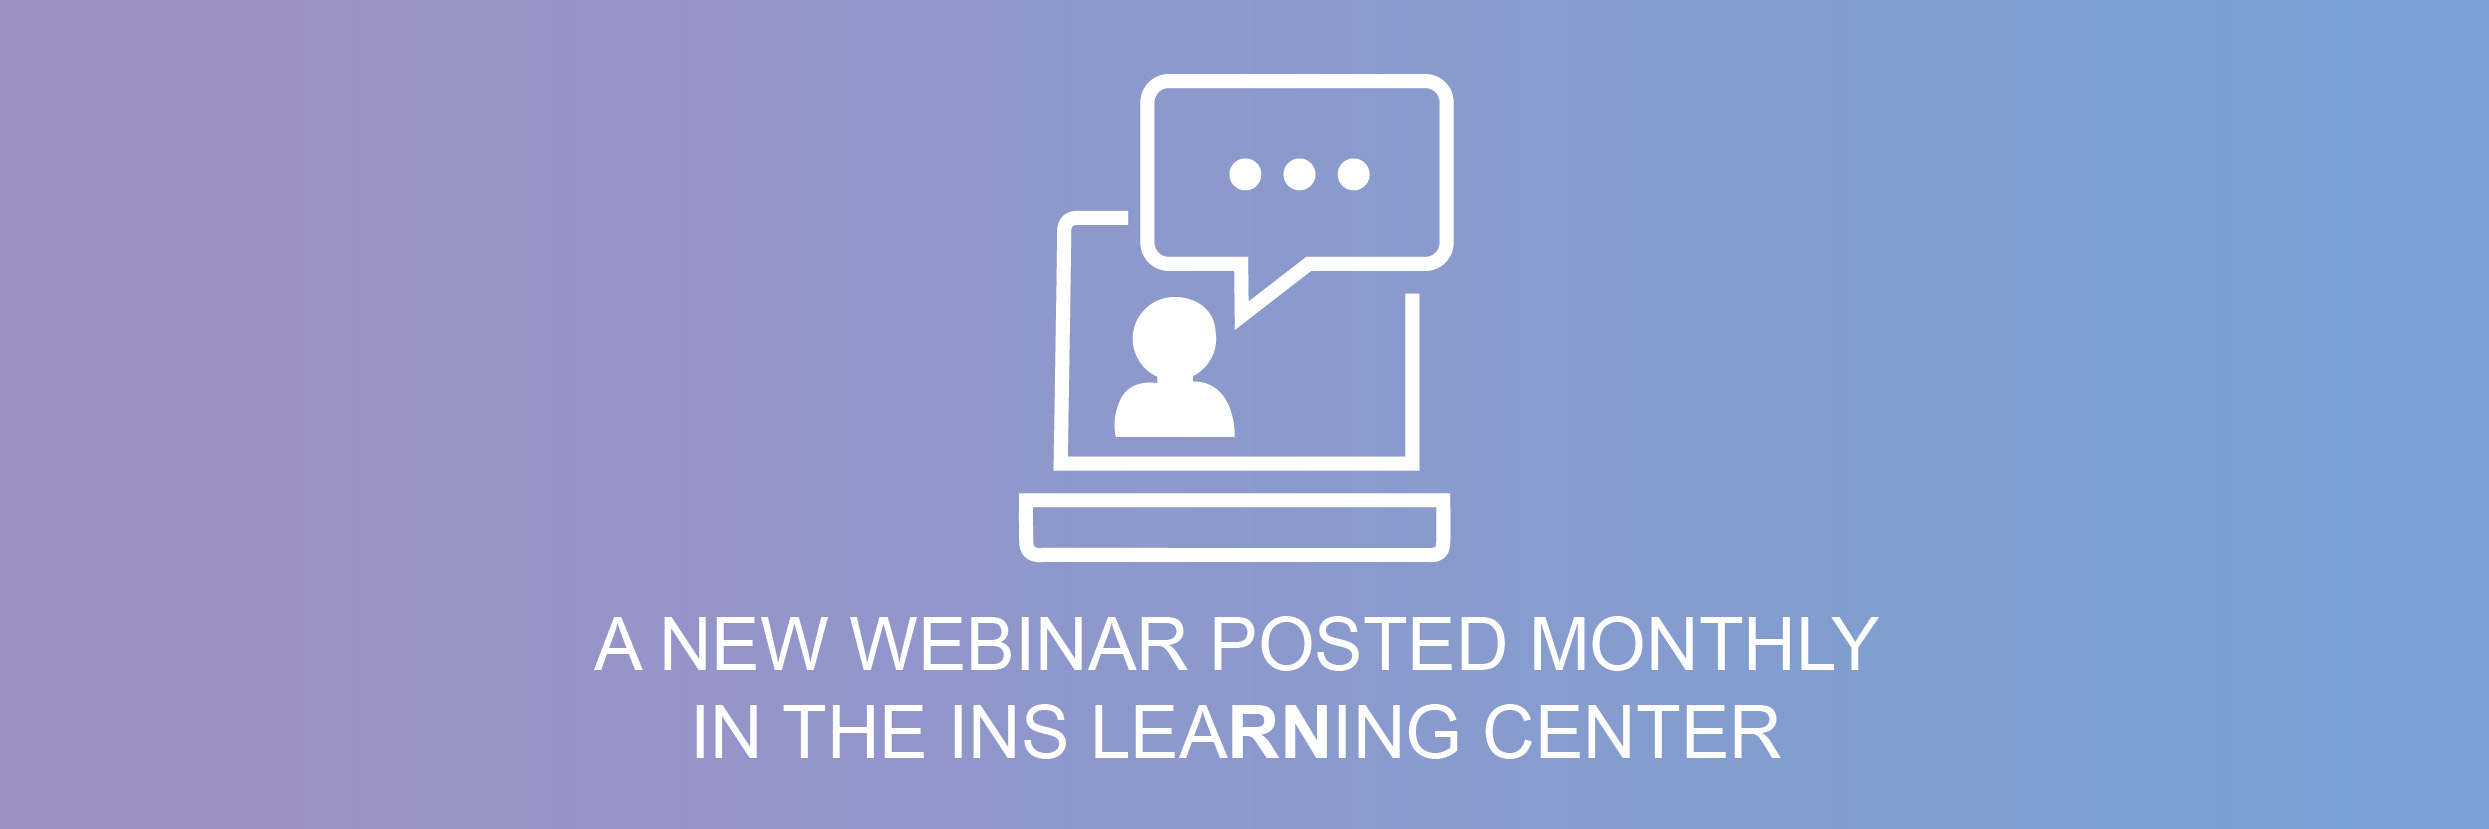 "A computer learning icon above the words ""A new webinar posted monthly in the ins learning center"""